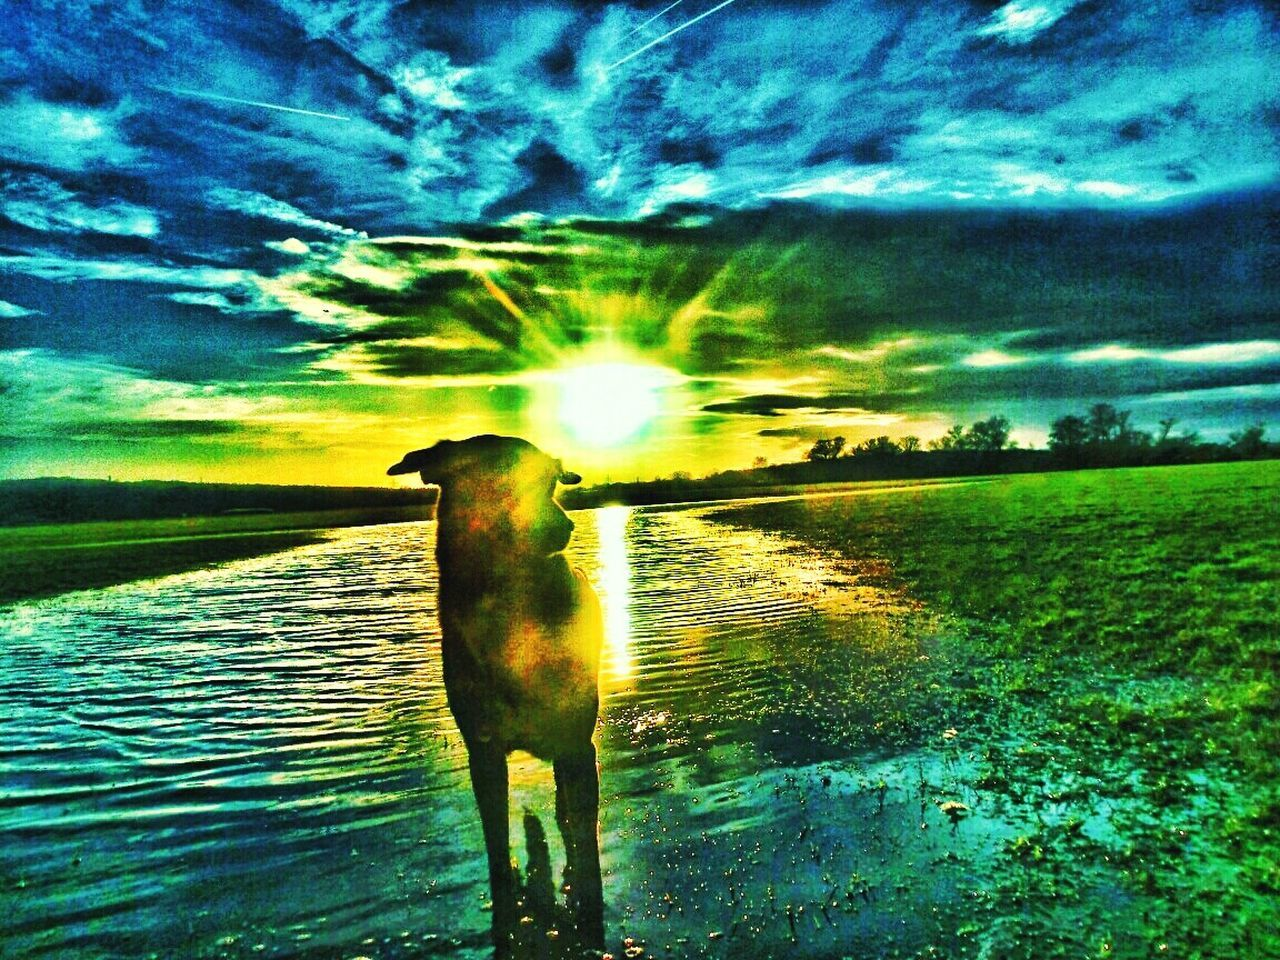 Color Explosion Beauty In Nature 😀 Nature. Countryside Sunrays Sun_collection, Sky_collection, Cloudporn, Skyporn Art Gallery Art And Craft Artphotography Apocalyptic My Dog Is Cooler Than Your Kid. 😝 Dog Lover Dog Of The Day Let's Have Some Fun EyeEm Best Edits Hdr_edits No Edit No Fun 😱 Jolie Fantasy Edits